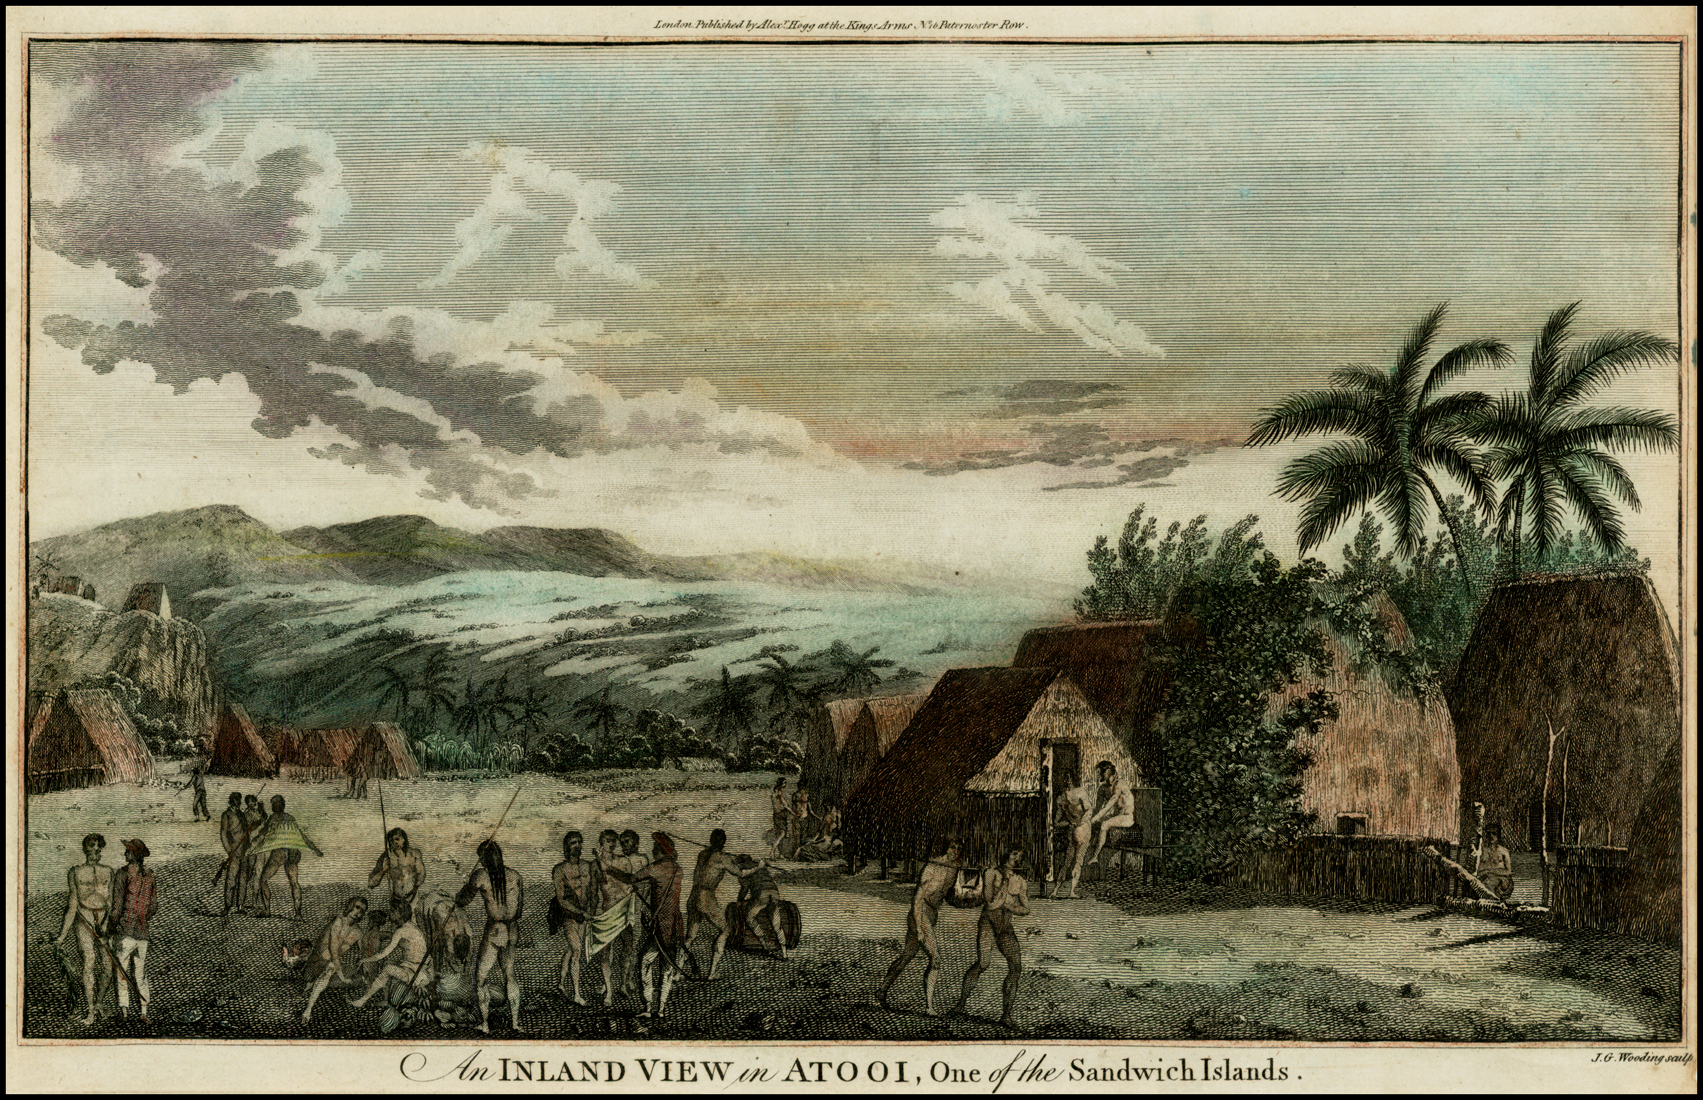 A hand-coloured lithograph depicting a village visited by Captain James Cook near Waimea, Kauai, in the Sandwich Islands (now known as the Hawaiian Islands). Based on an 1778 etching by John Webber which was published by William Hodges, it is one of the few views of Hawaii made during Cook's third voyage (1776–1779).